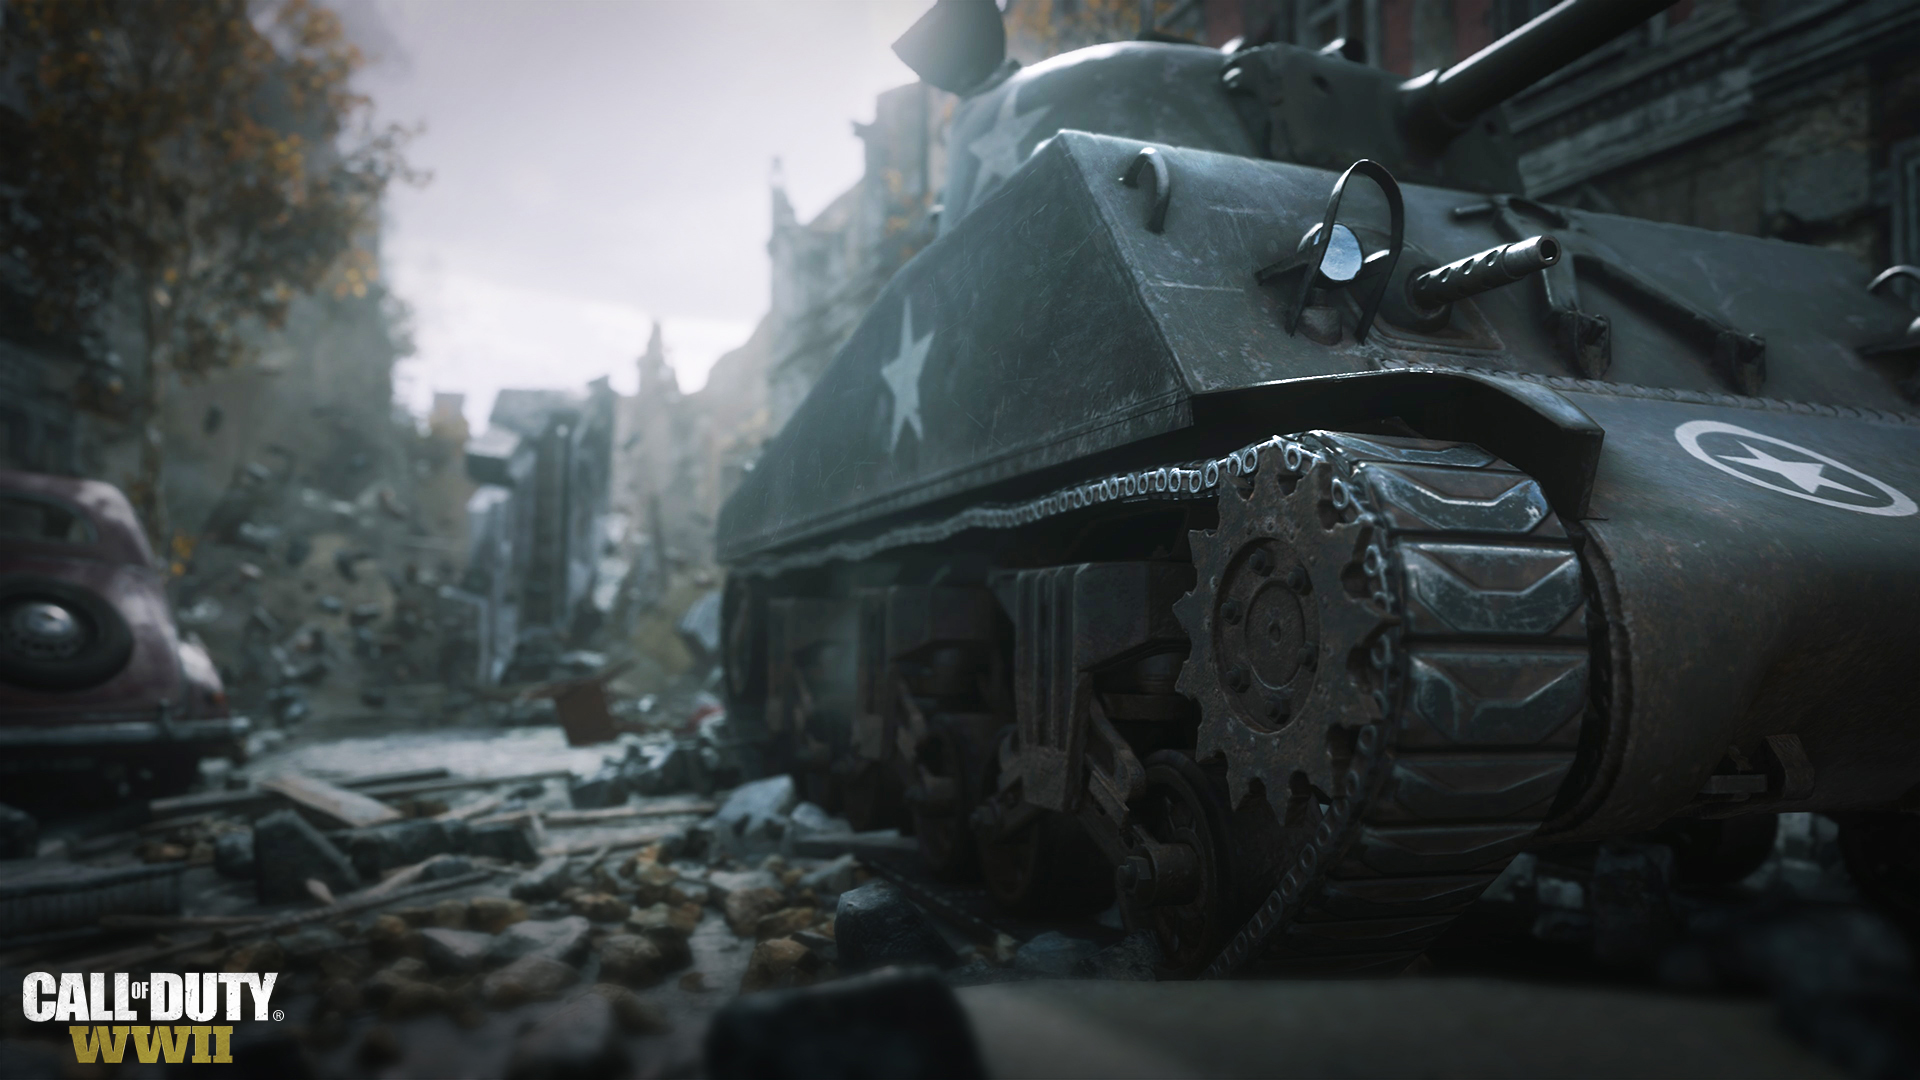 Call of Duty: WWII takes us back to franchise basics